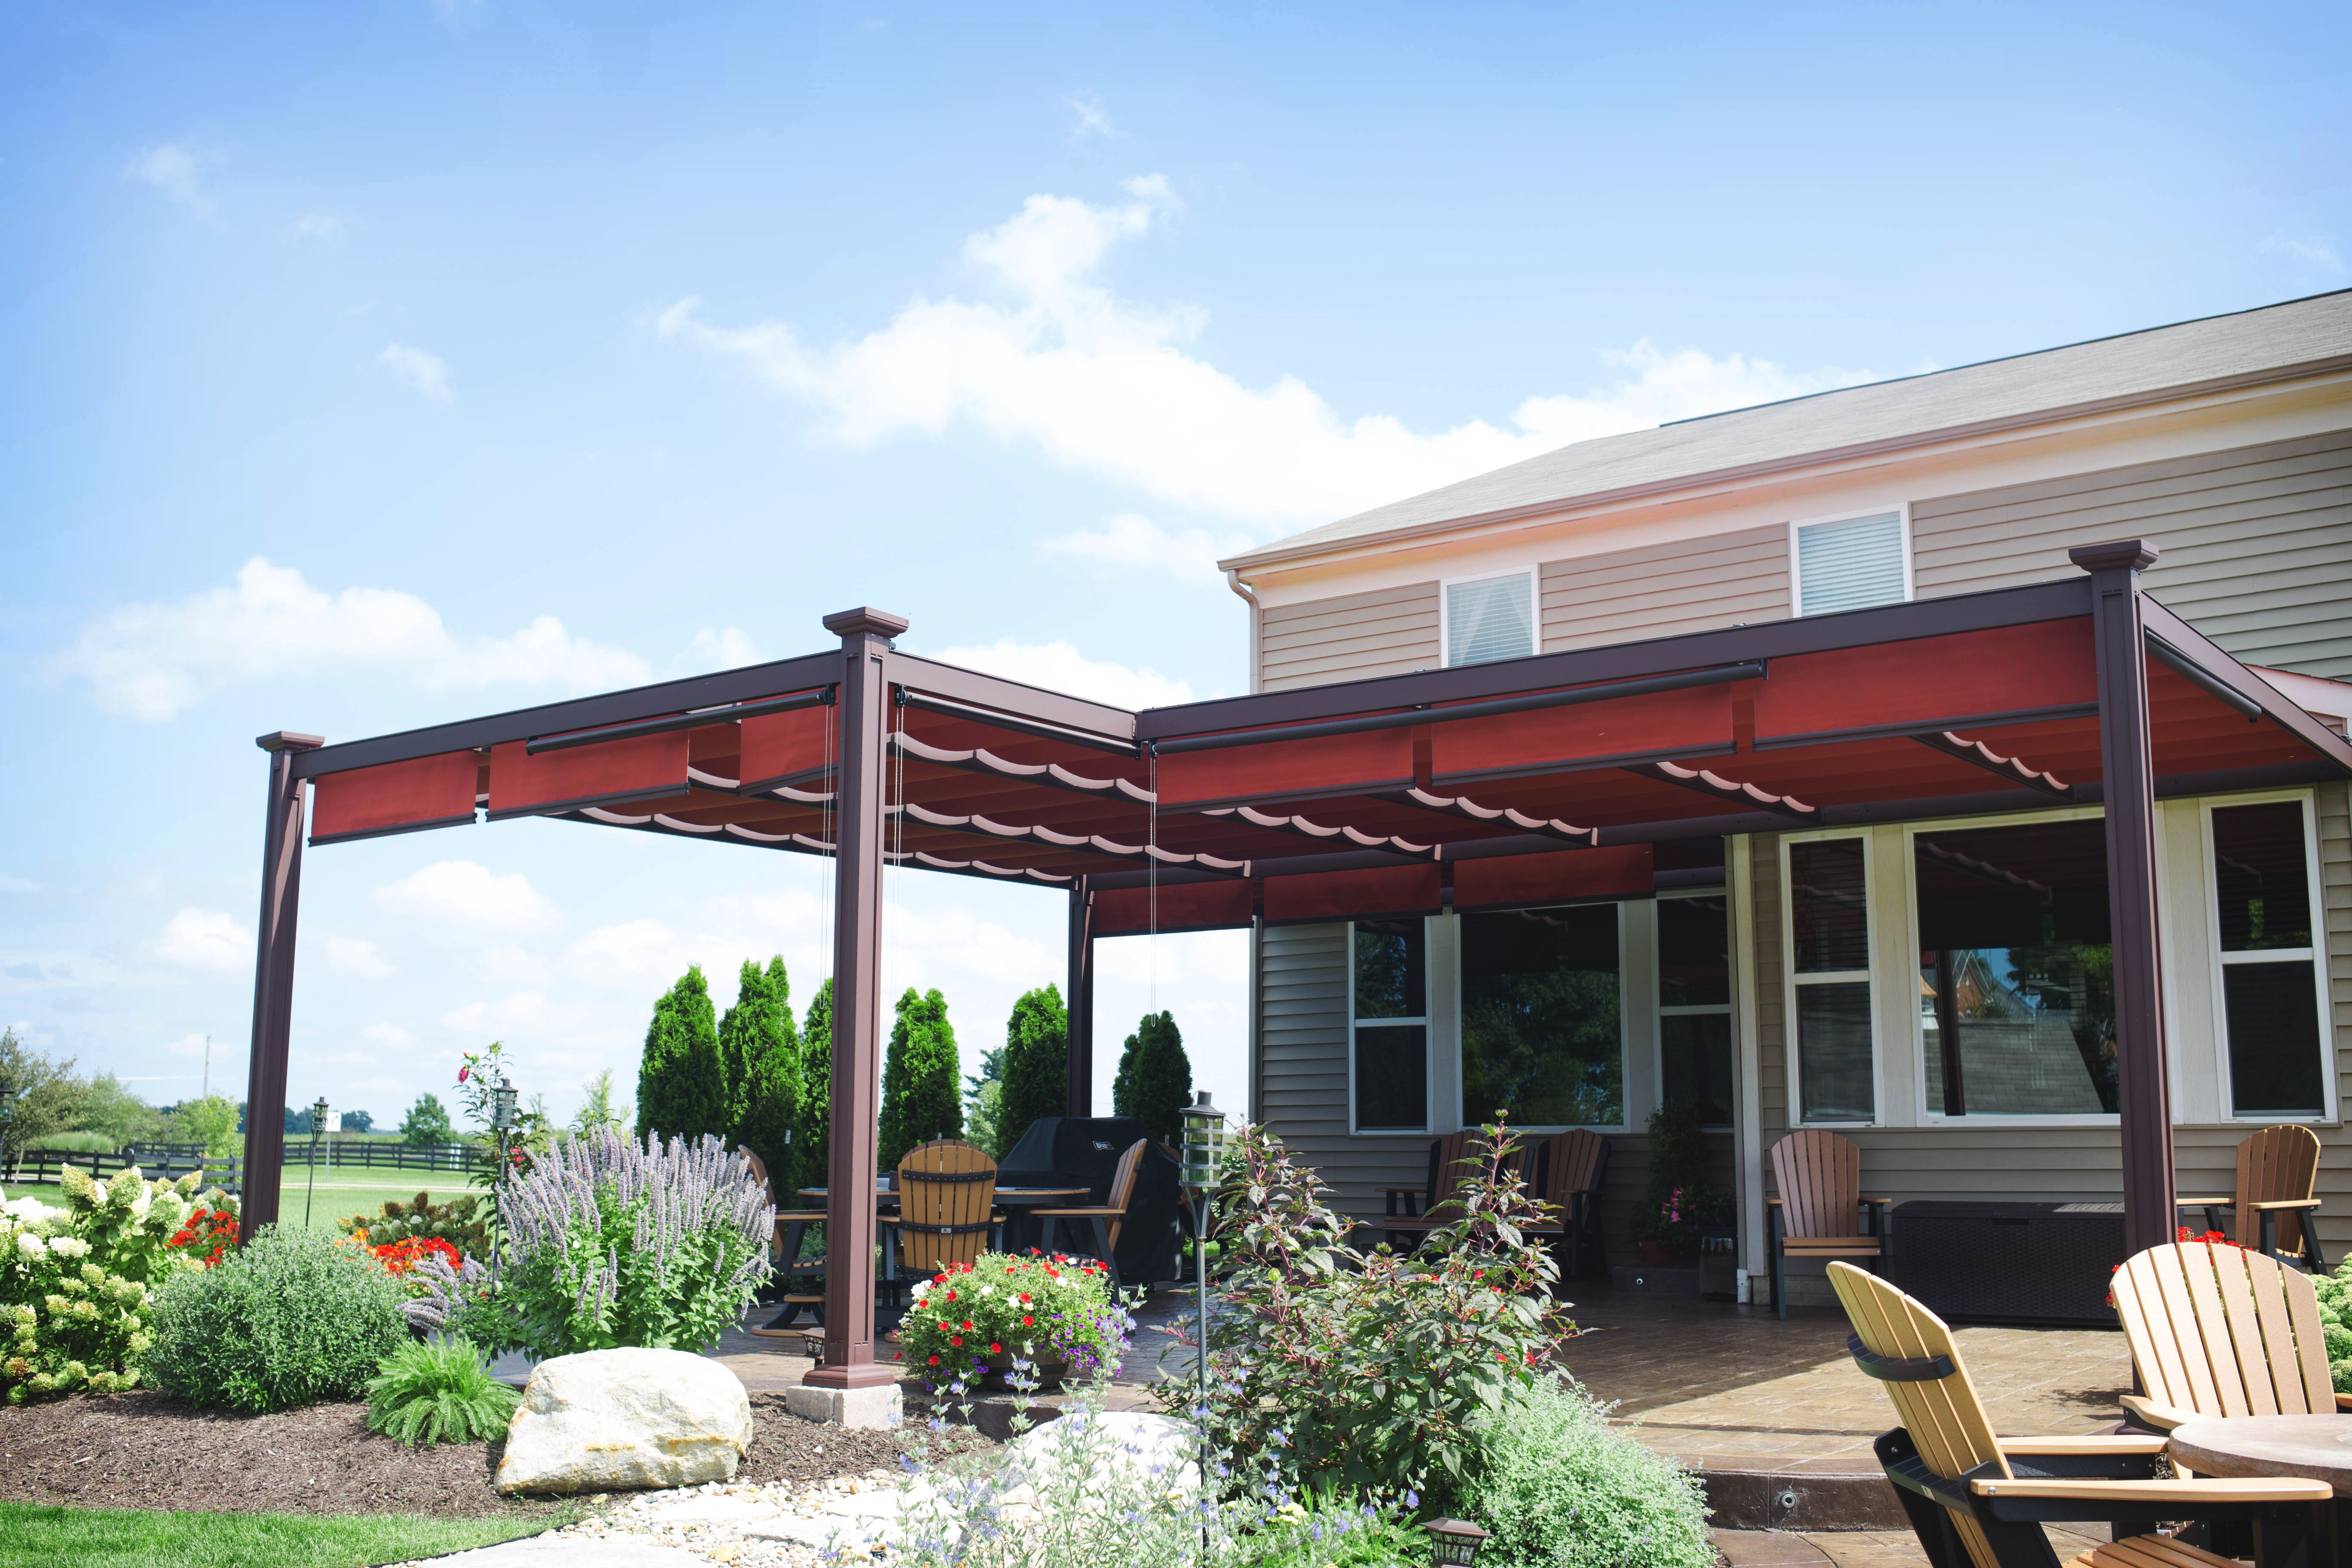 Attached Aluminum Bungalow With Beautiful Red Canopies Covering